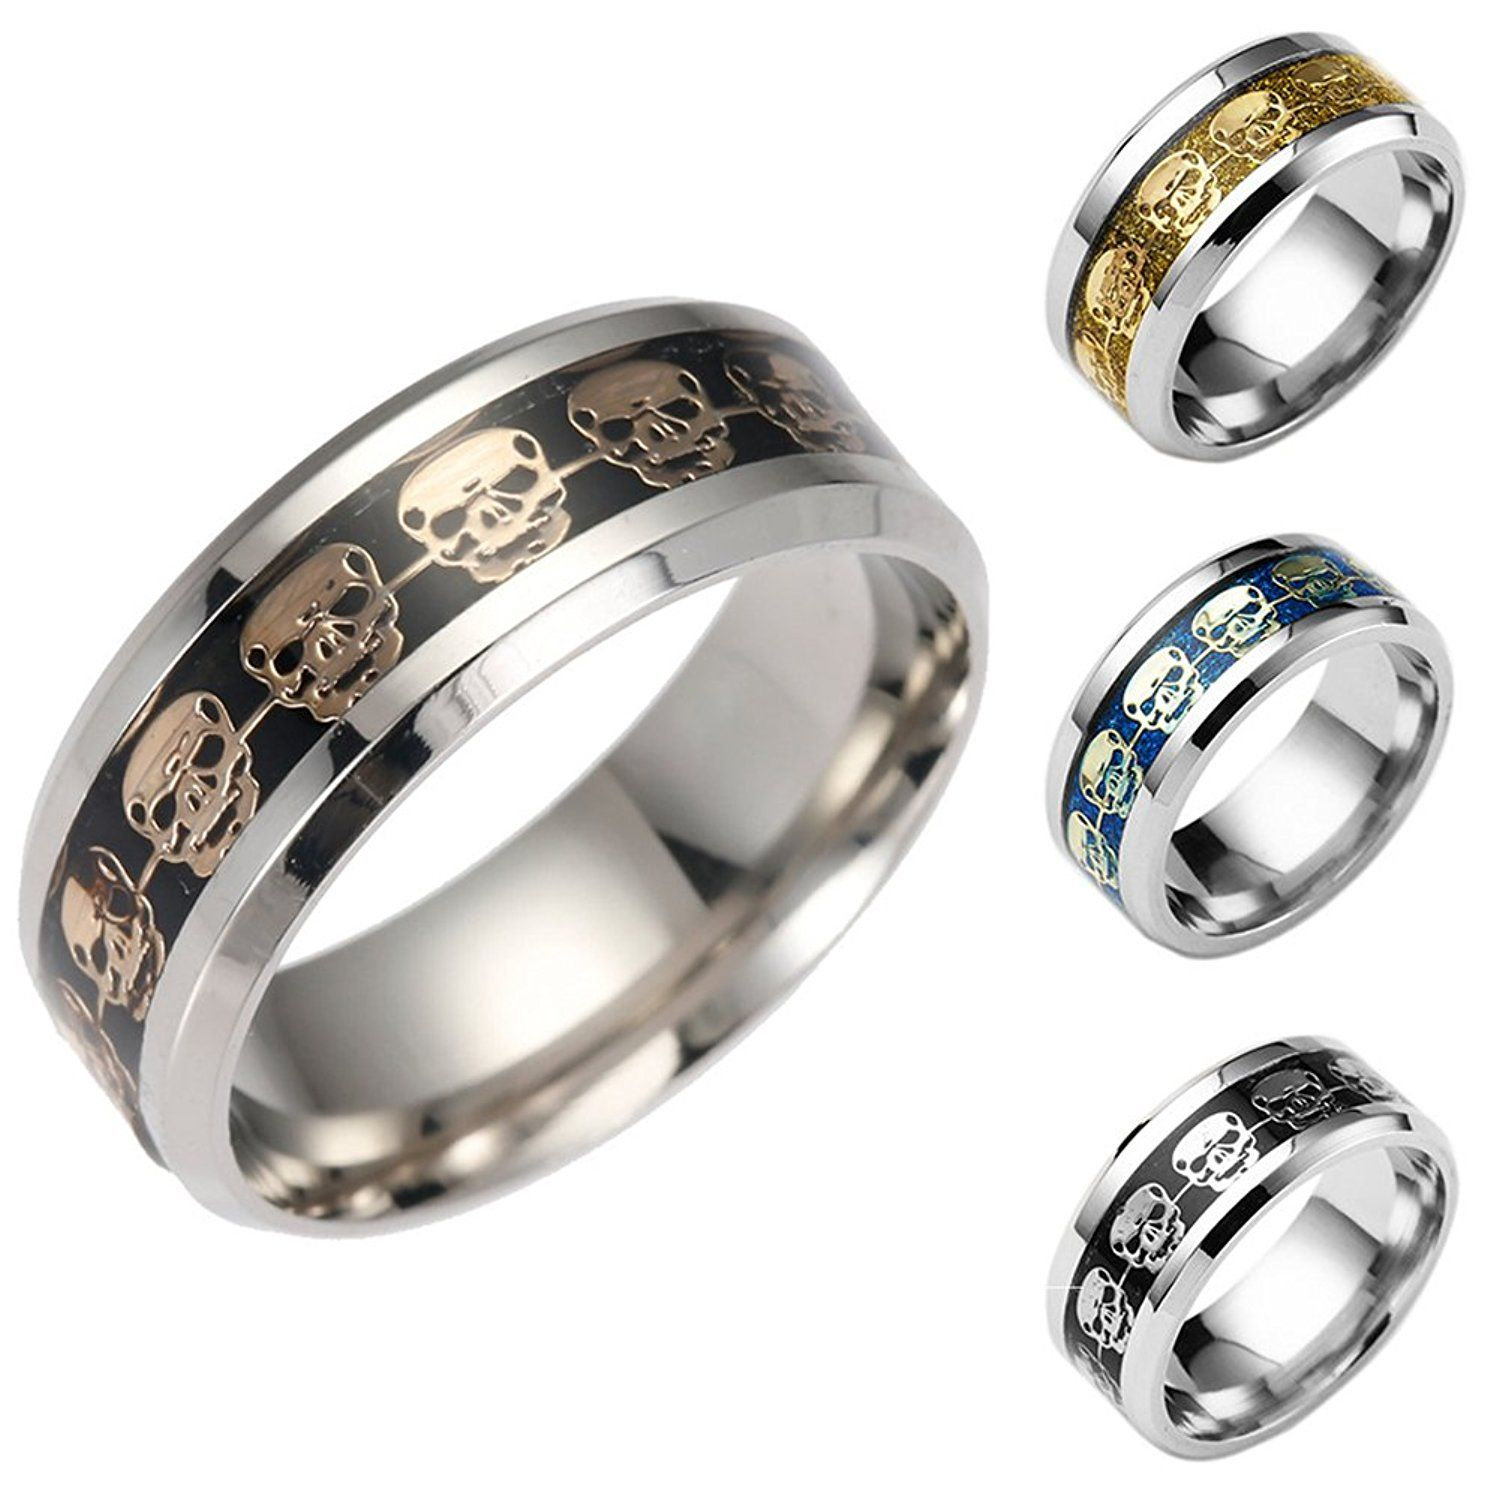 Rosemes 8mm Titanium Wedding Band for Men with